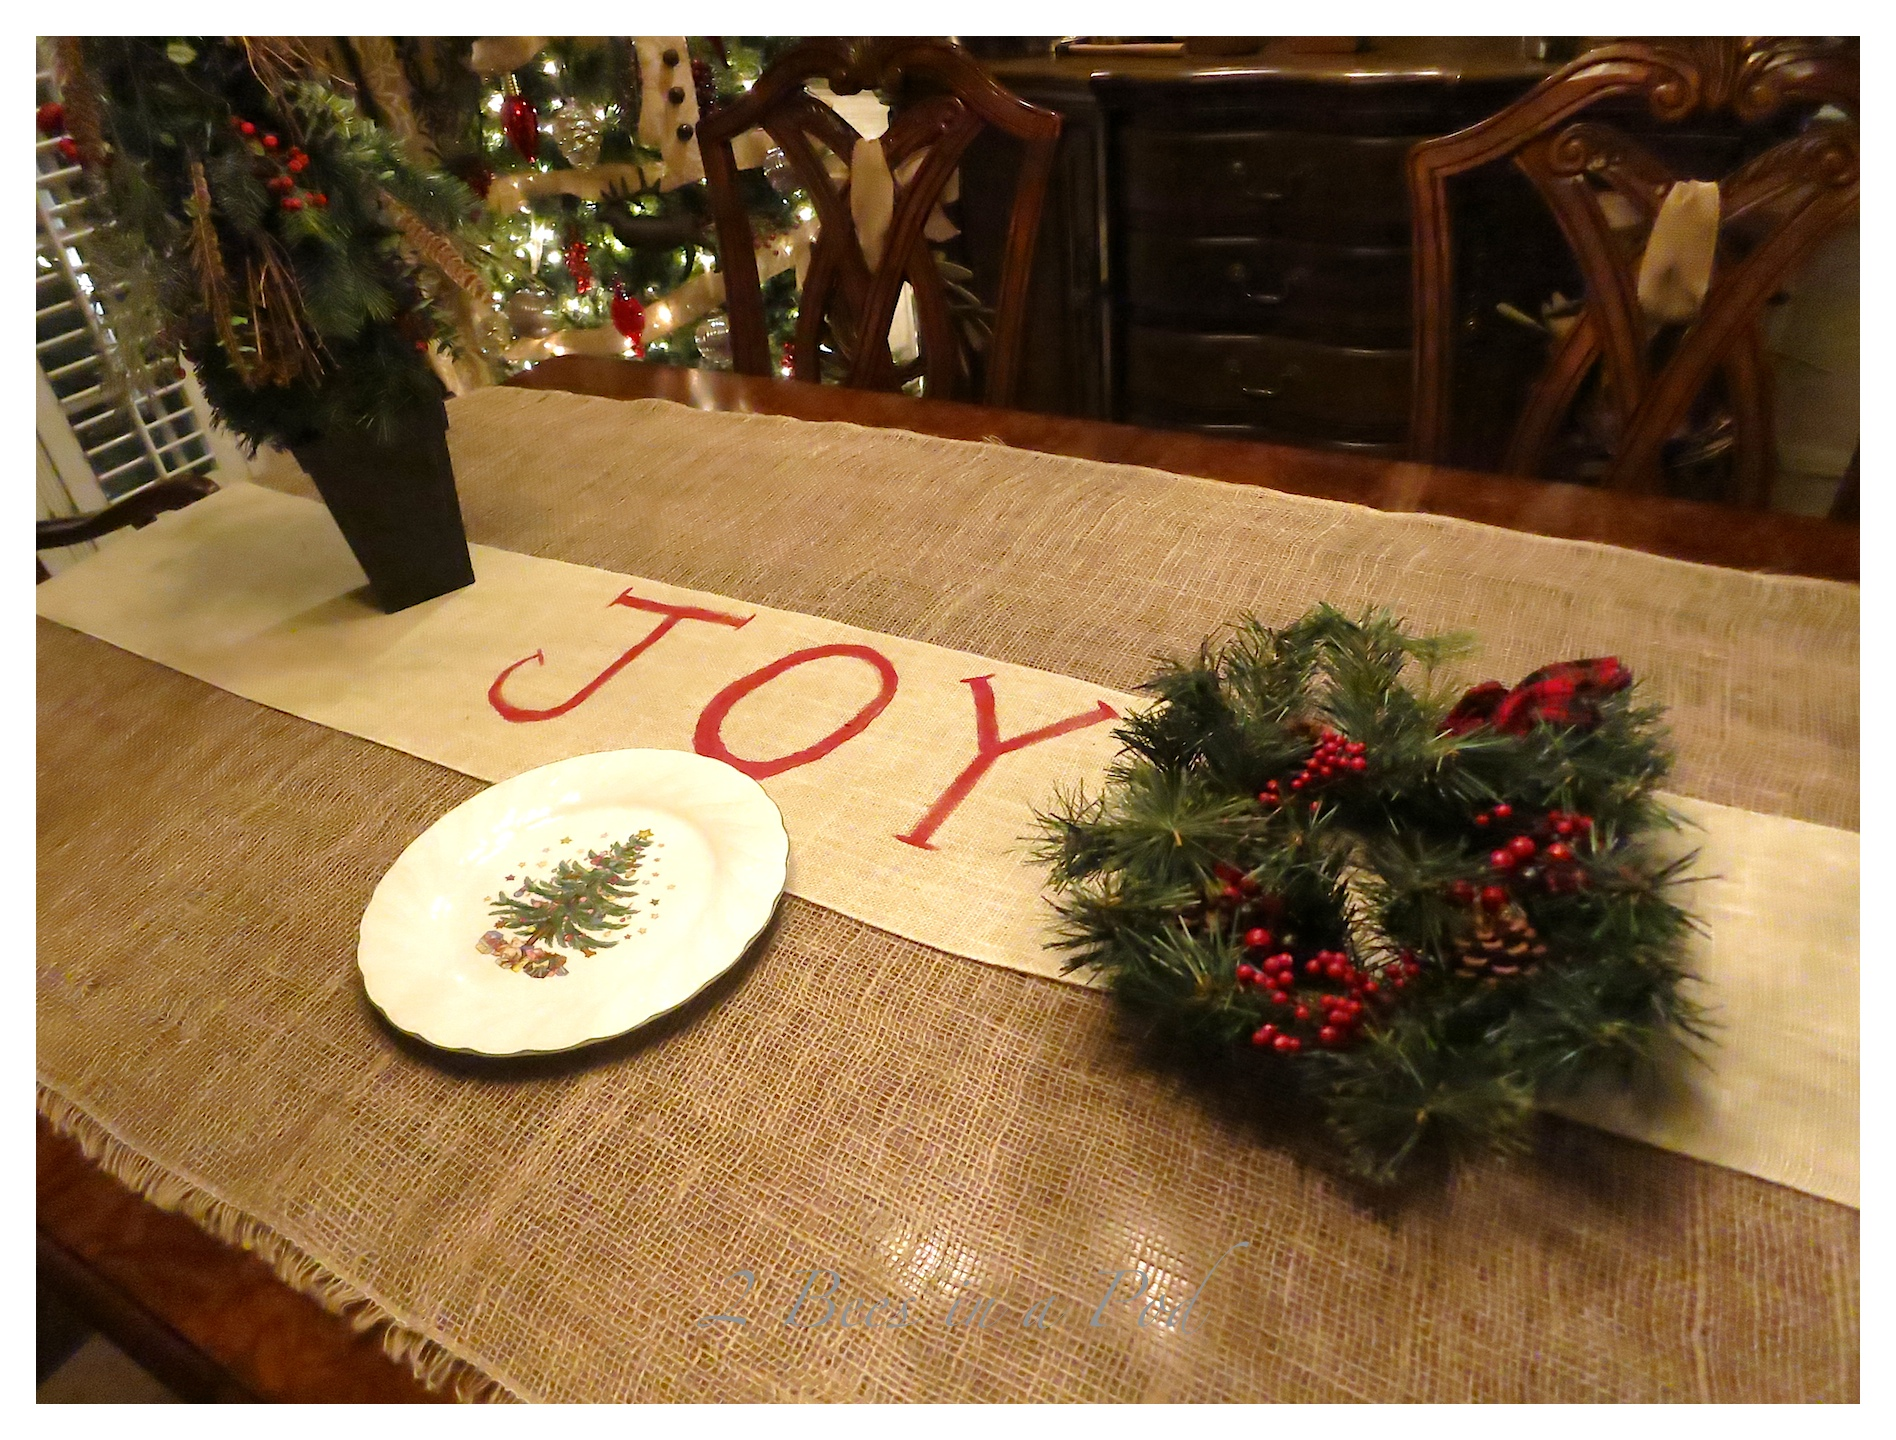 Fall Decor Wallpaper Joy Table Runner For The Christmas Table 2 Bees In A Pod